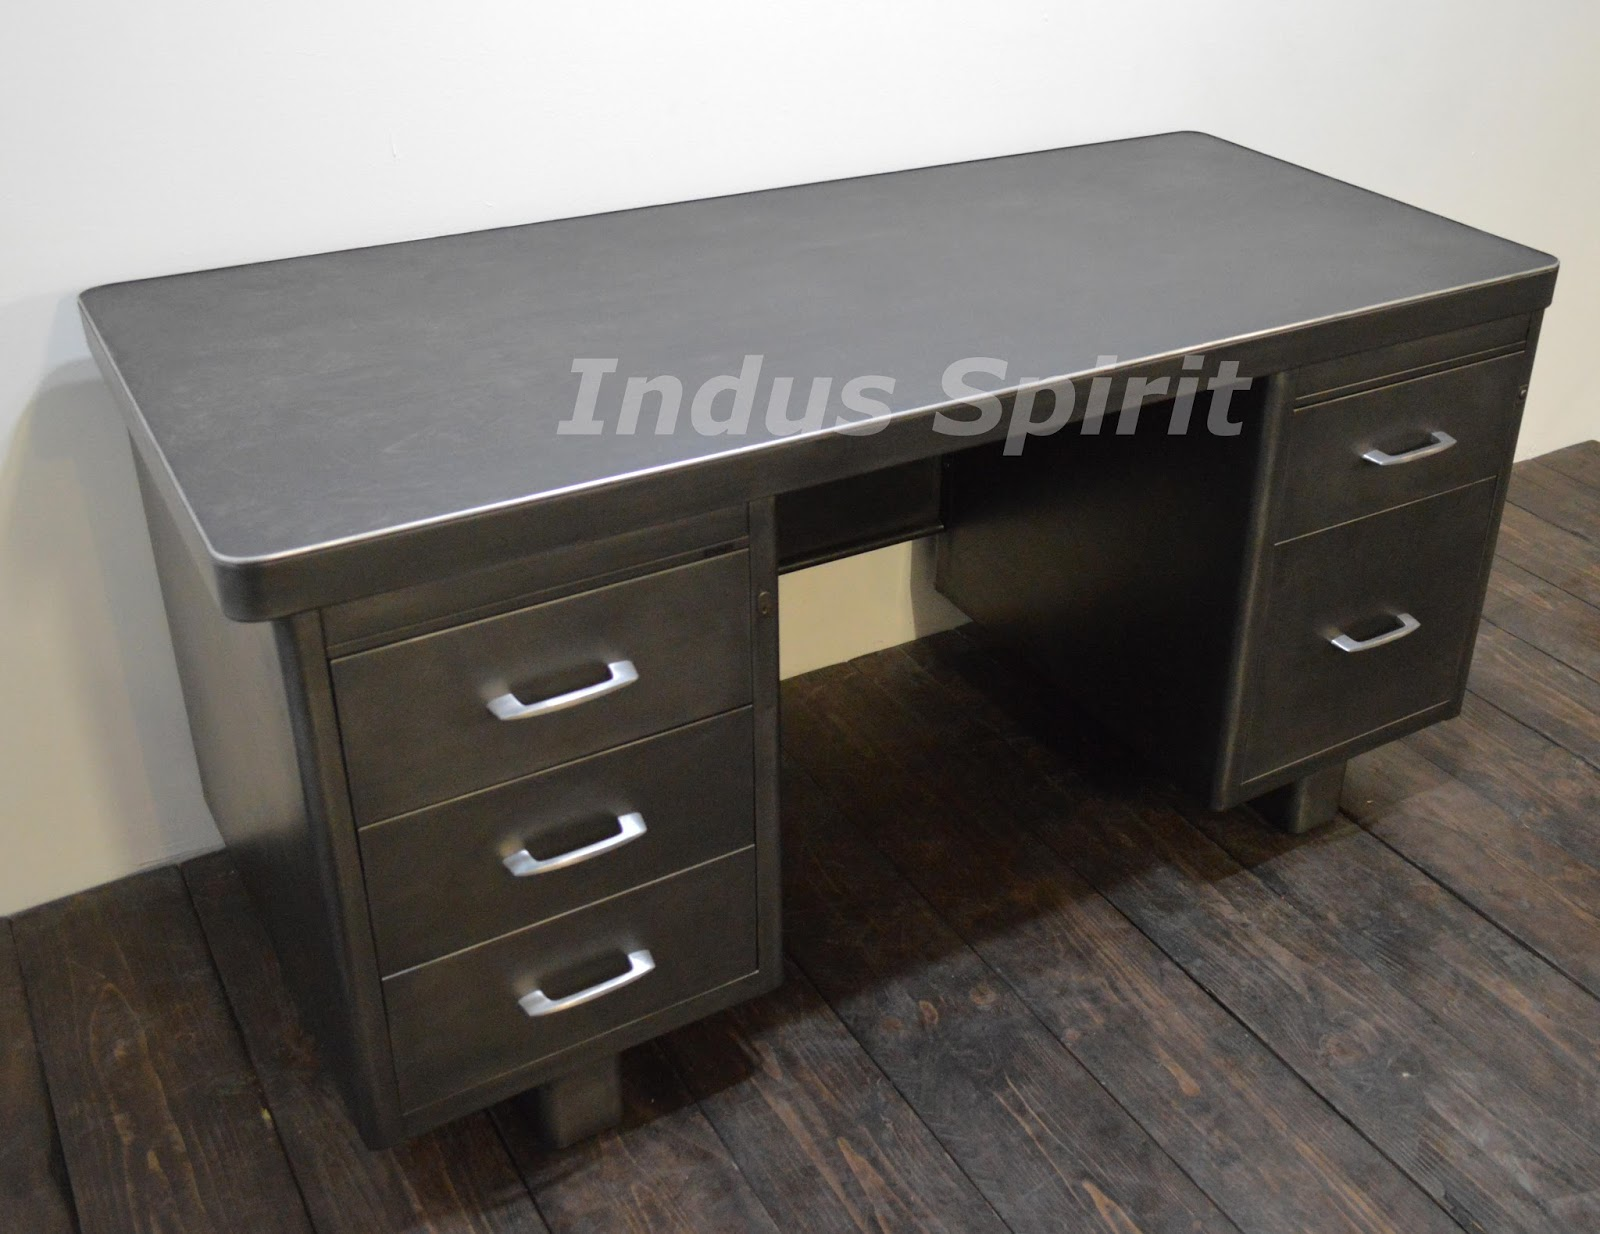 D coration bureau industriel d co sphair for Bureau industriel